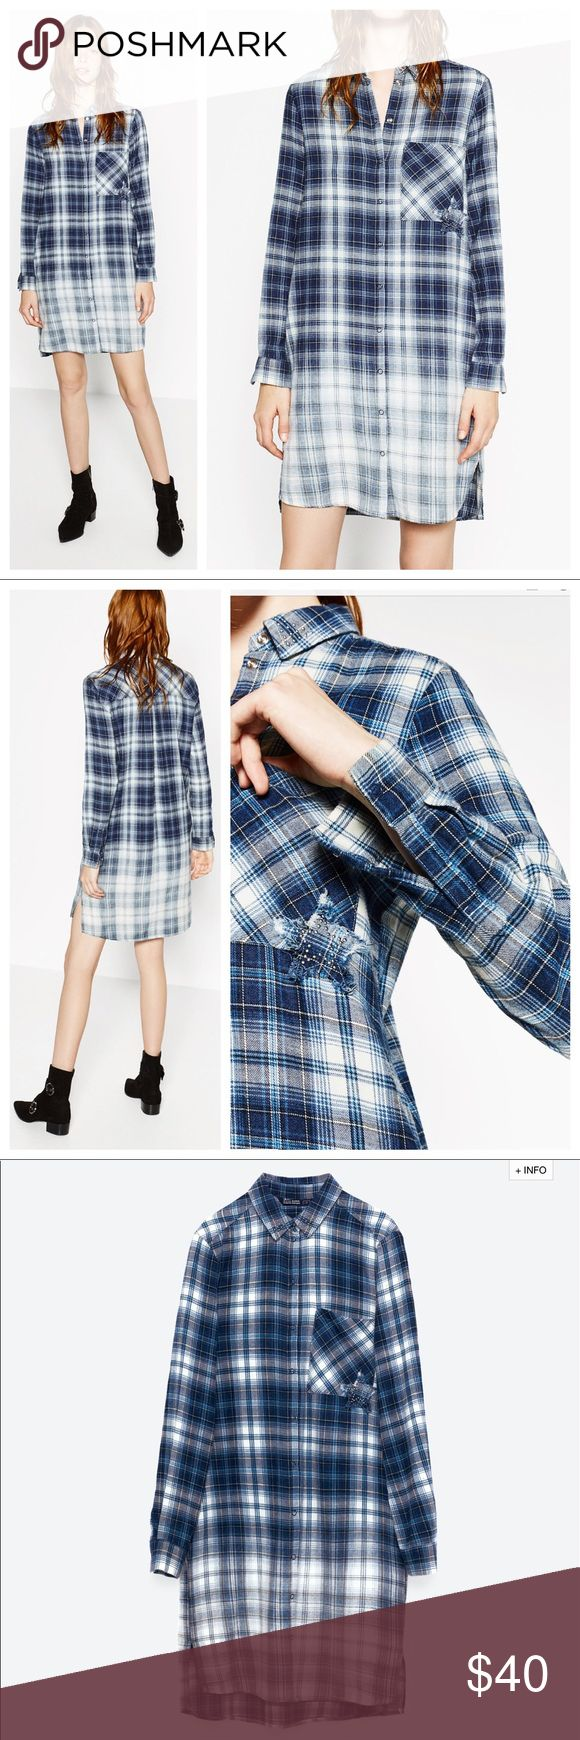 Zara Flannel Shirt Dress This is a super cute and comfy flannel shirt dress! I love the ombré effect of the flannel on this dress. It has some cute little studded detail at the collar and on the star patch as well. This is brand new with tags on! And retails for $50! Size is XS and measures about 35 inches long from shoulder to hem! Love this! Super cute, casual, and stylish! Zara Dresses